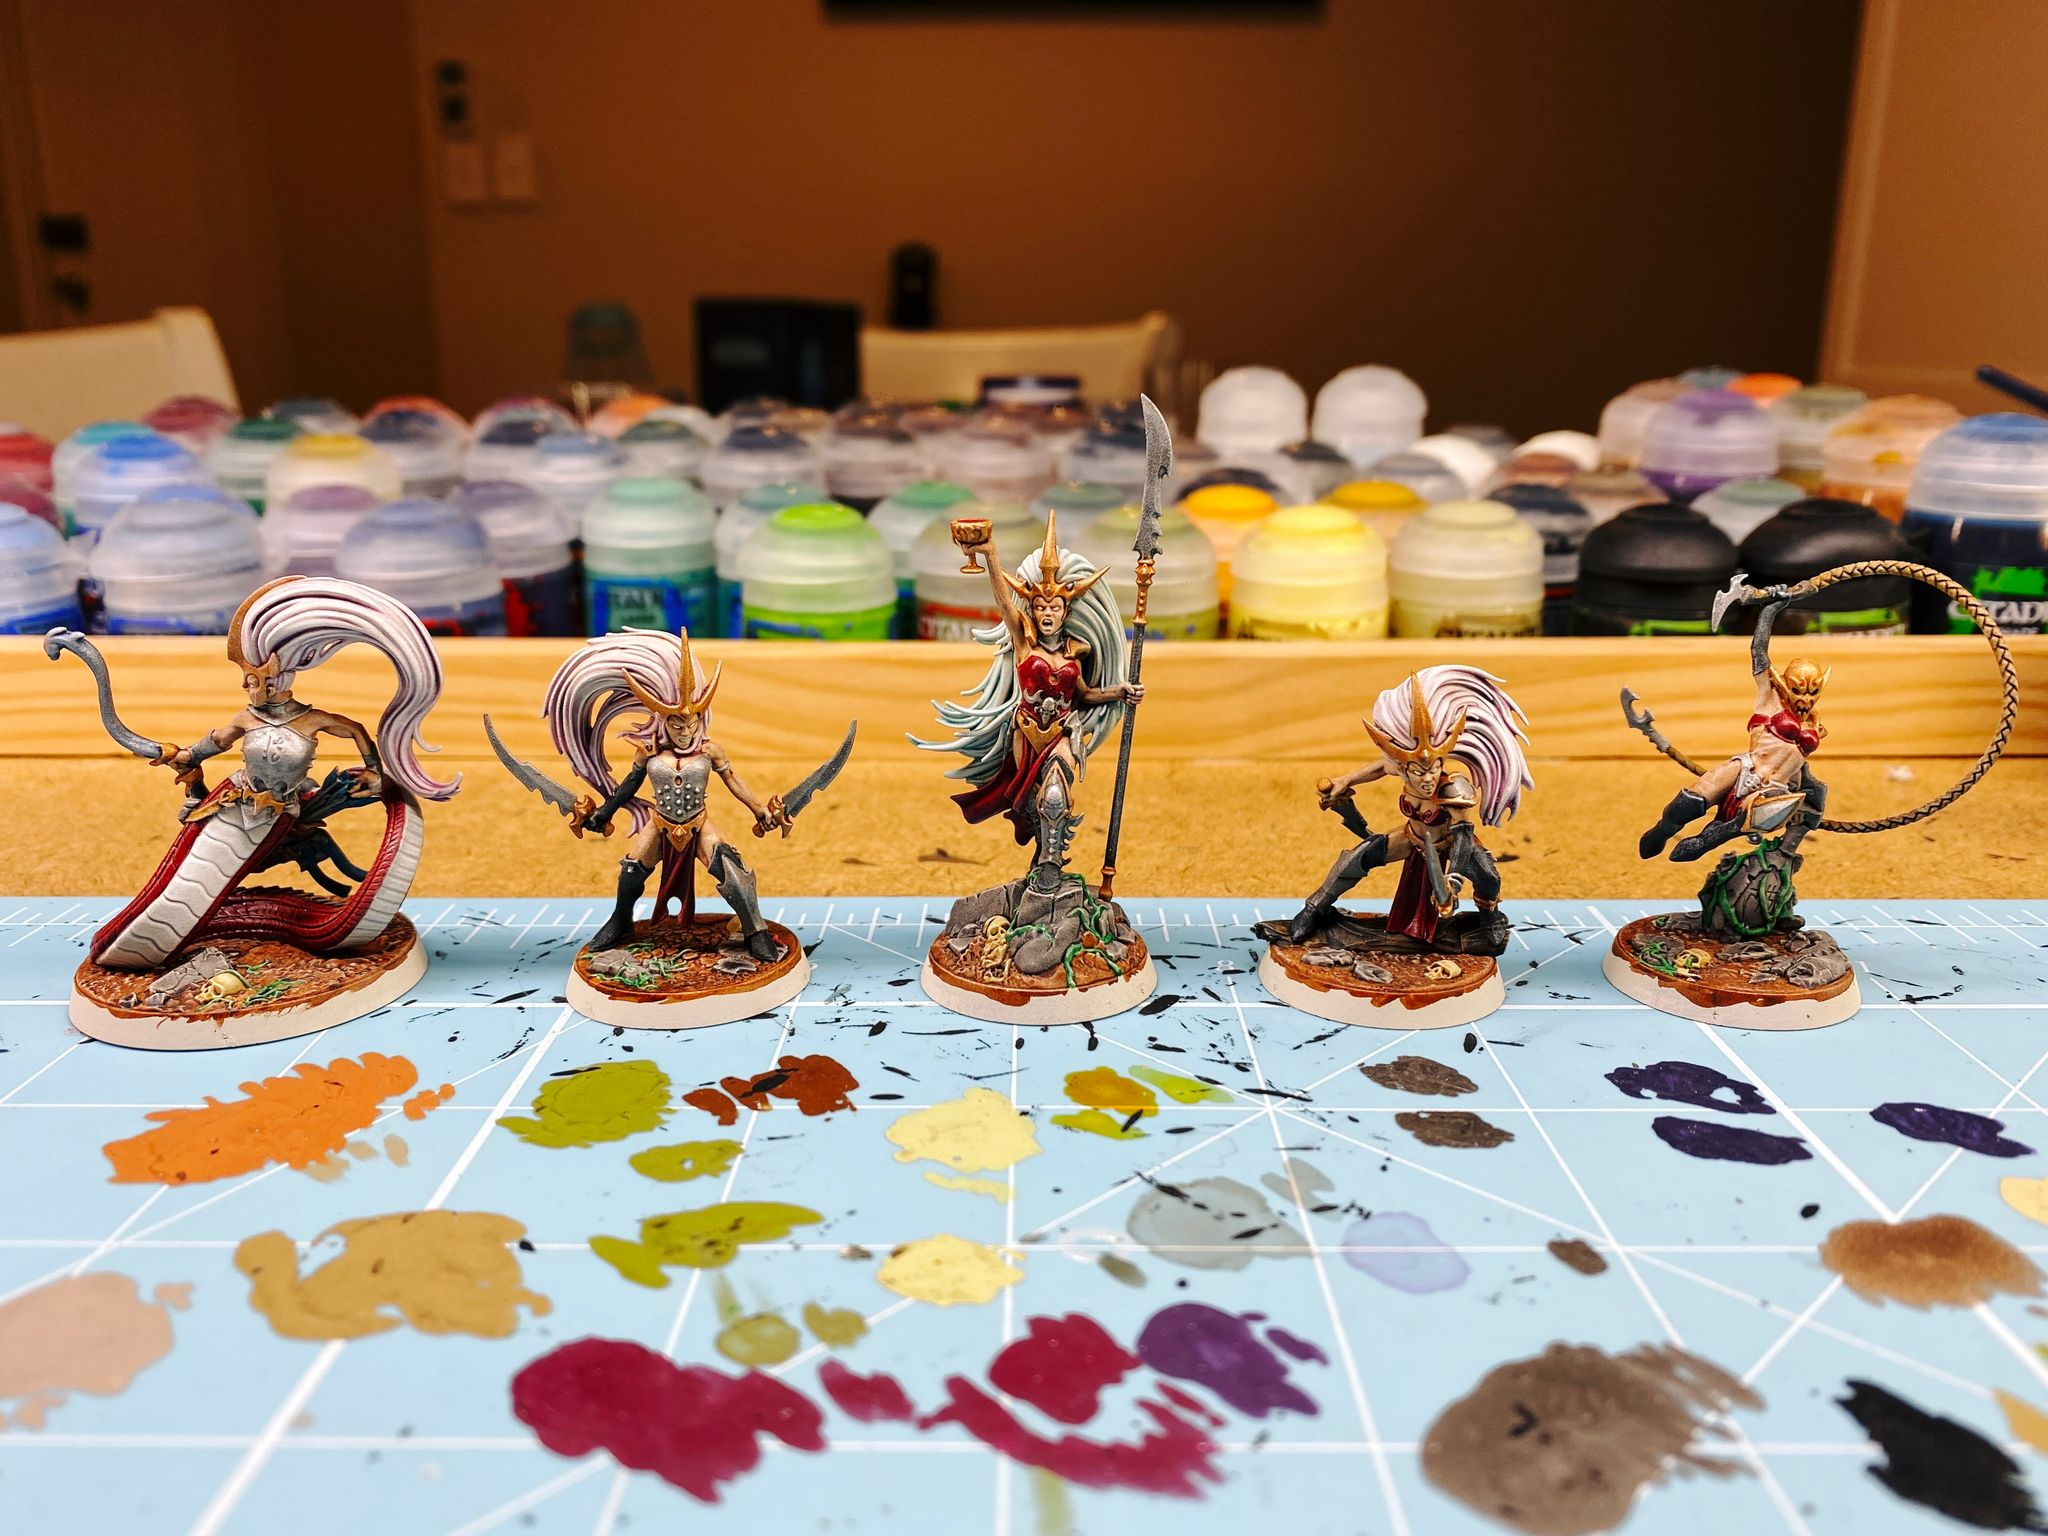 A photo of the warband Morgwaeth's Blade-coven from Warhammer Underworlds. Five female aelf miniatures, the one in the middle is holding a spear with a goblet raised in triumph and has long pale blue hair. The two on either side of her have long pale pink hair and are both holding swords like they're about to use them. The one on the left's bottom half of body is a snake and she's holding a bow. The right one has a whip and is mid-leap over a broken statue. They're all not wearing much armour.